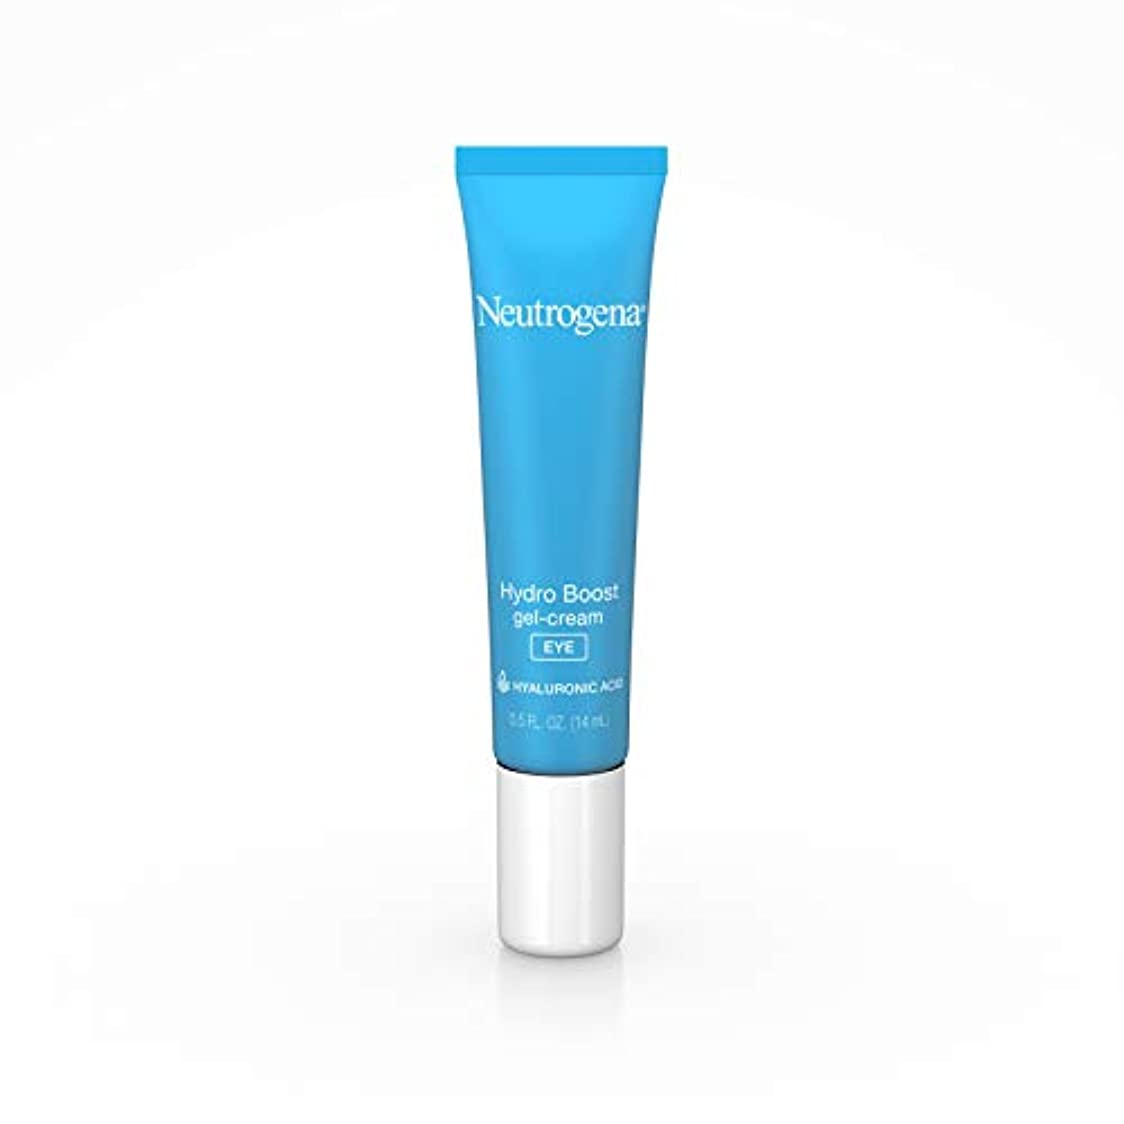 Neutrogena Hydro Boost gel-cream、extra-dryスキン